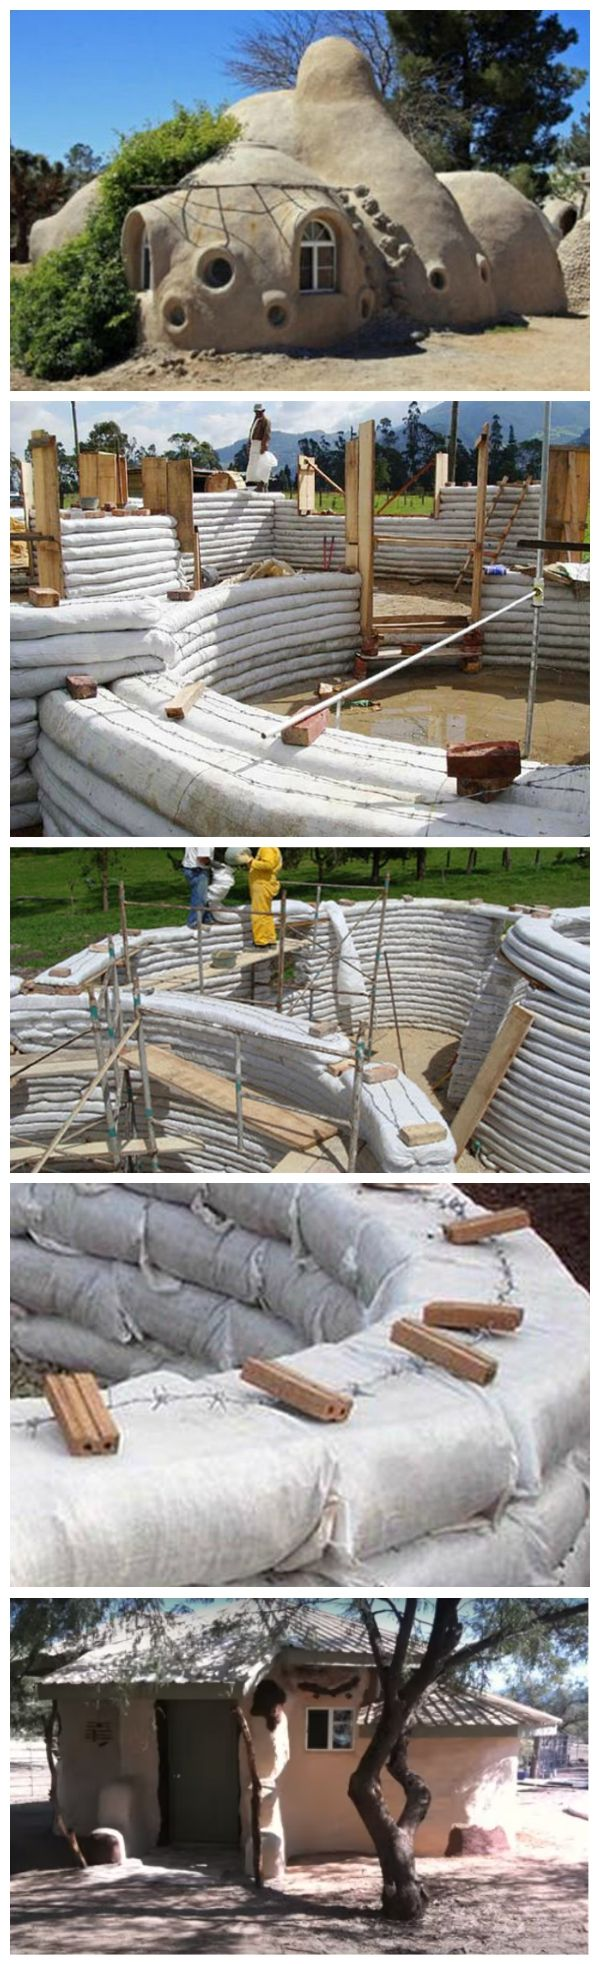 Earthbag homes cheap and easy to build container type for Cheapest type of house to build